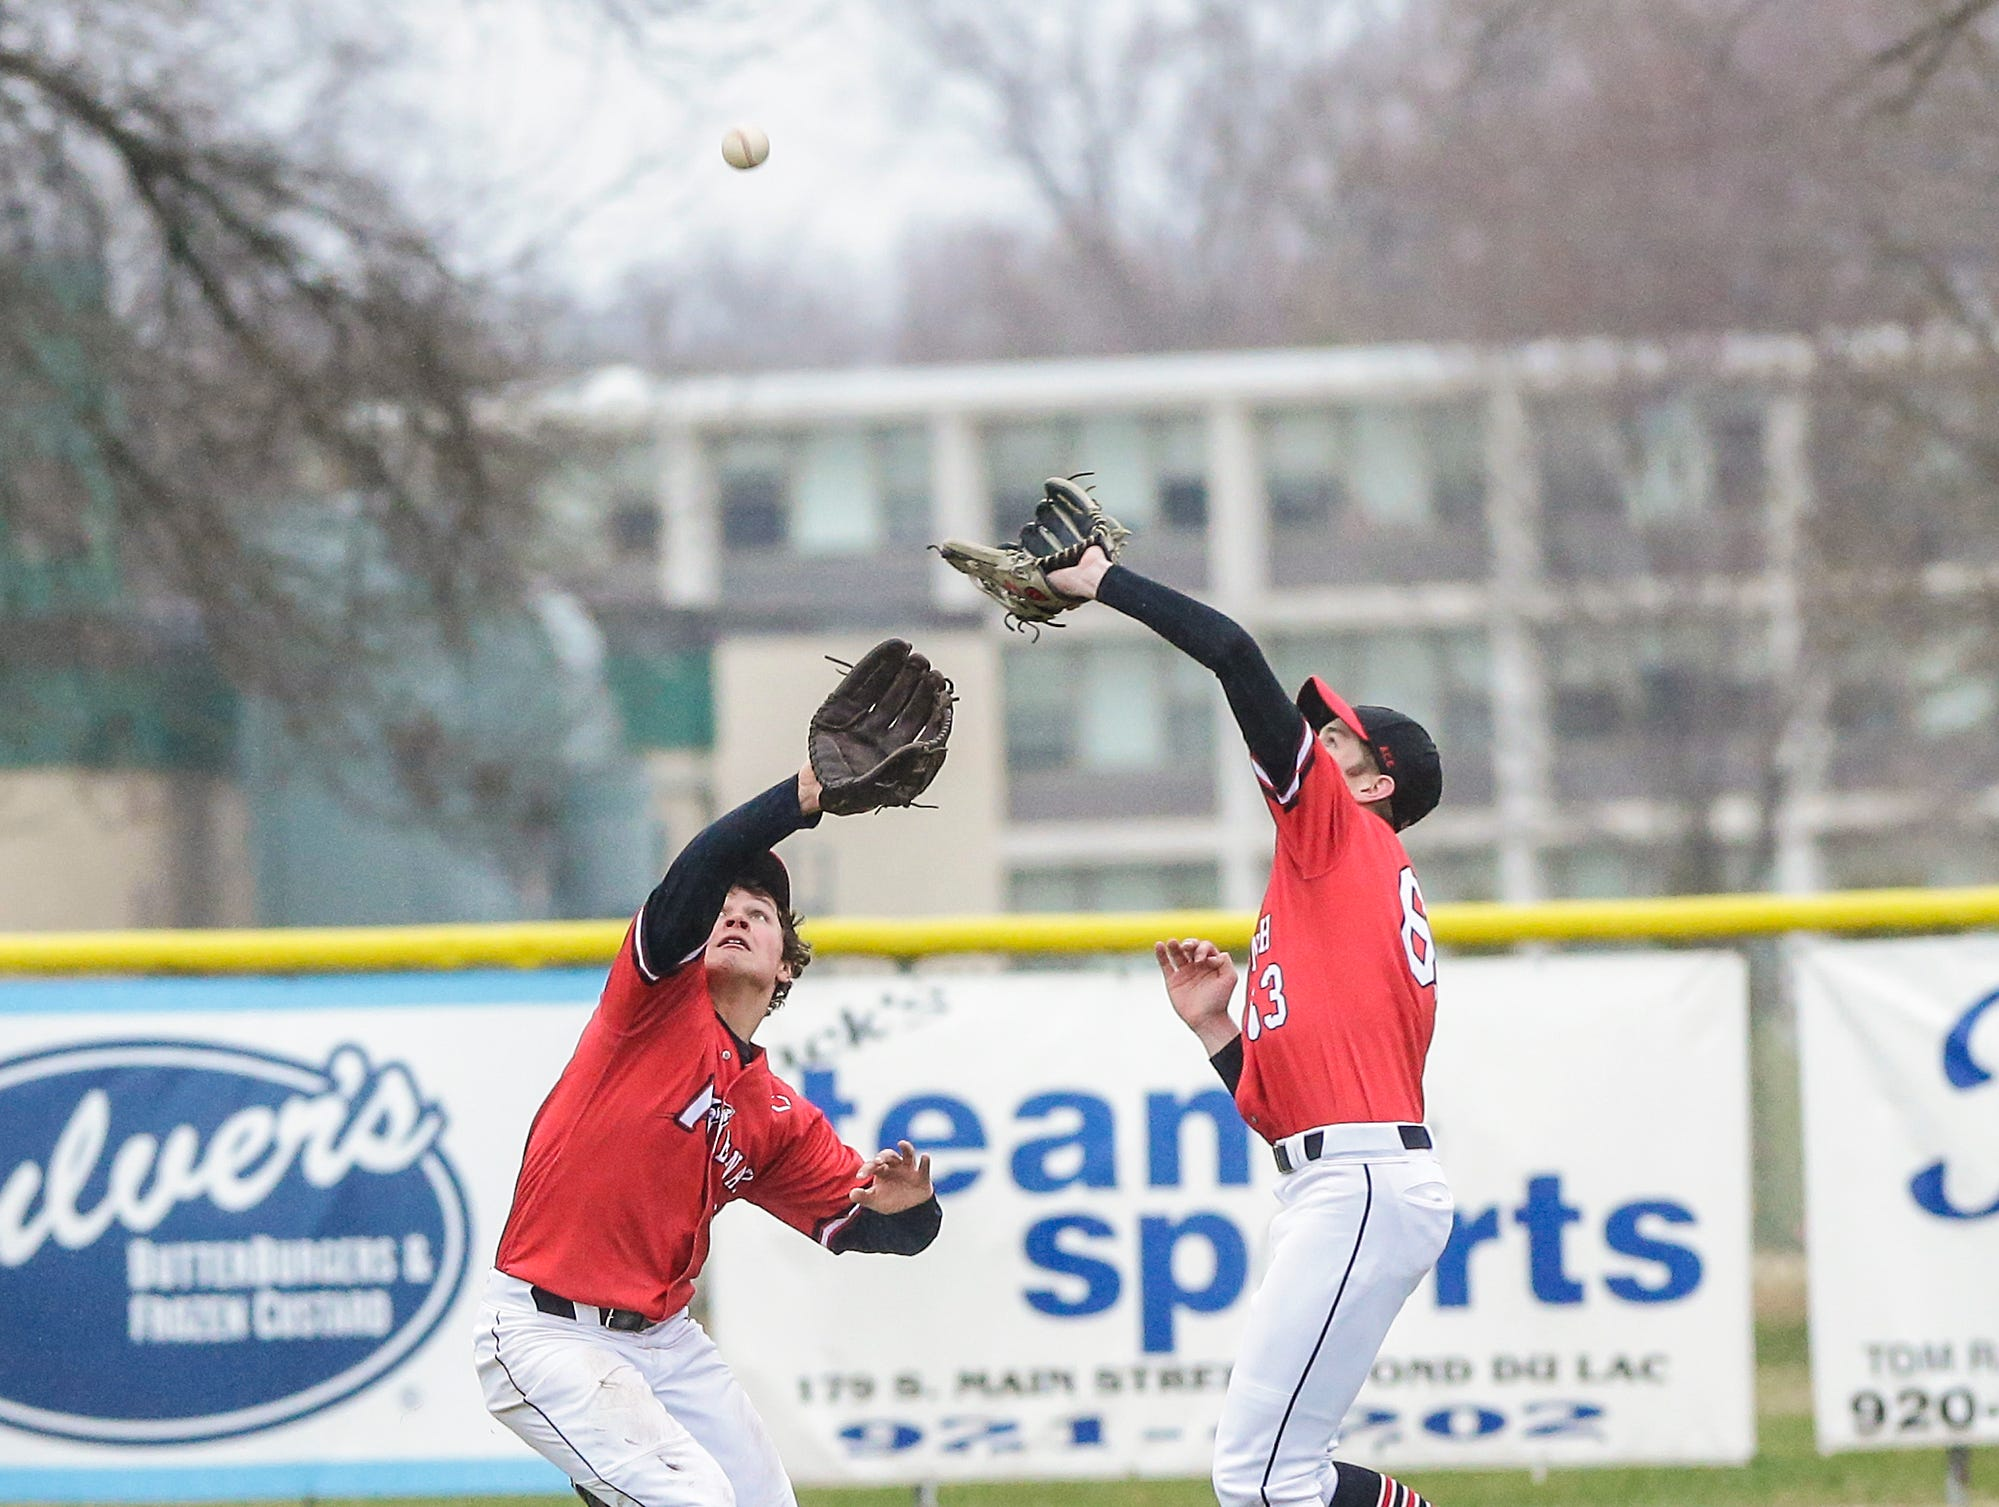 Neenah High School baseball's Samuel Dietrich (63) and Orion Rieden (12) go for a fly ball against Fond du Lac High School during their game Thursday, April 18, 2019 in Fond du Lac, Wis. Doug Raflik/USA TODAY NETWORK-Wisconsin